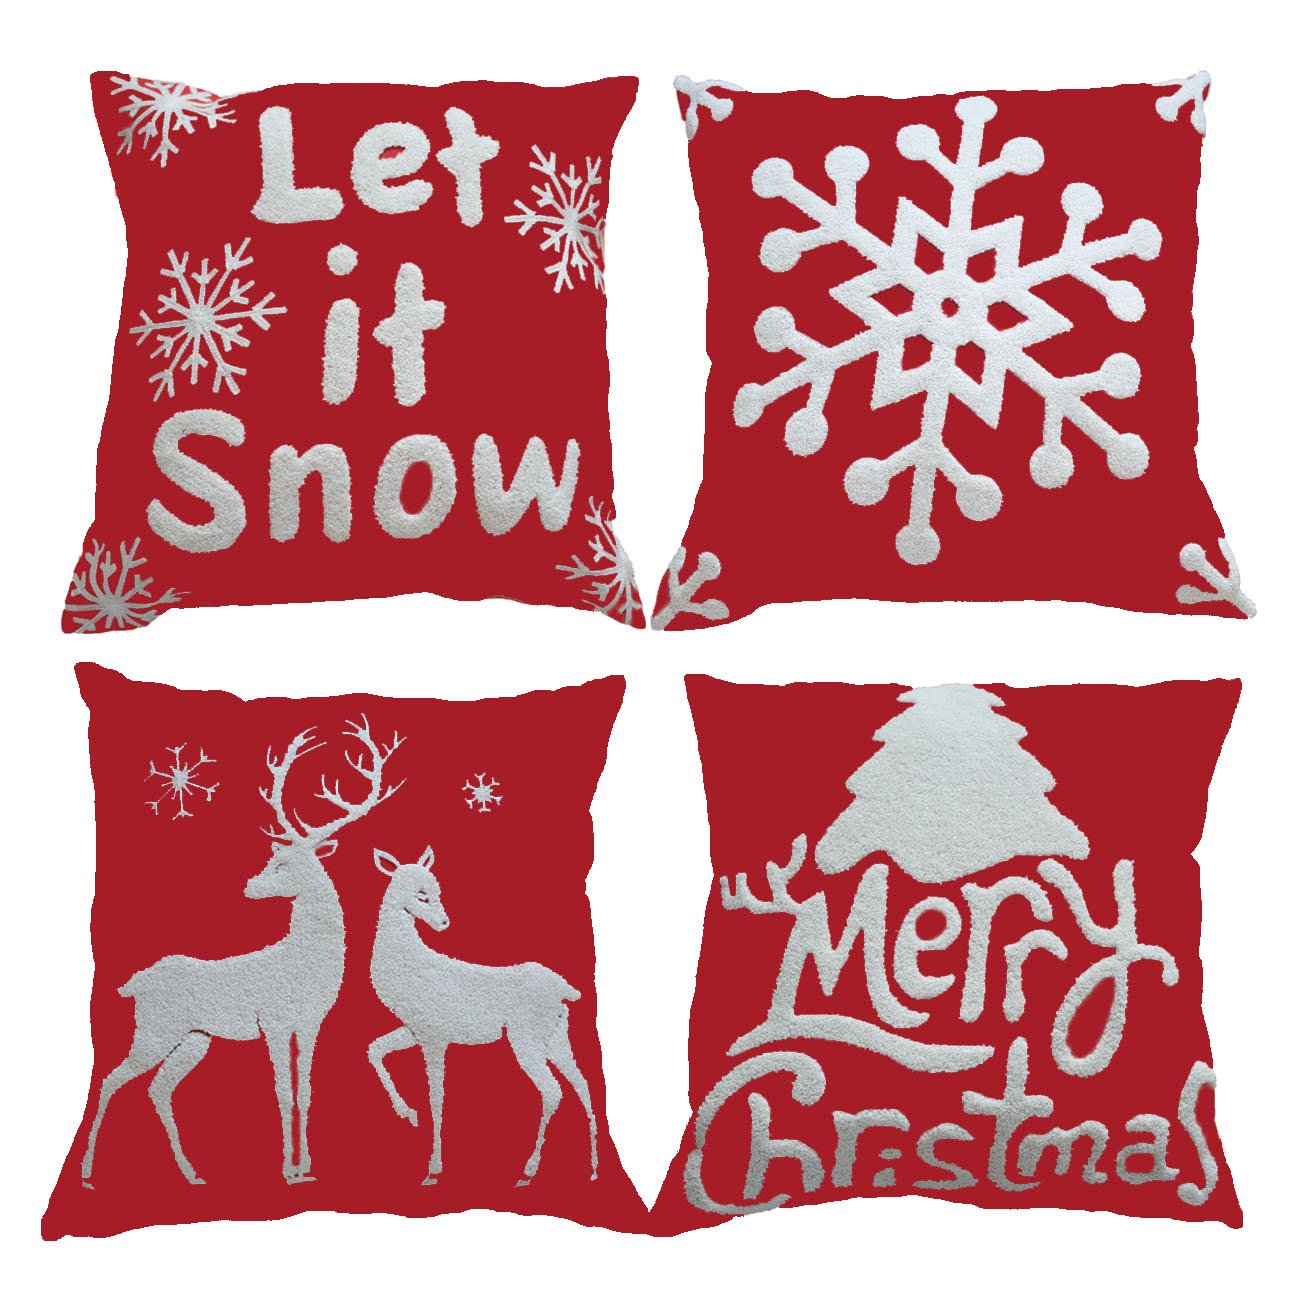 4 Embroidery Throw Pillow Cases 18x18 for Home Car Decorative (Christmas Tree,Christmas Deer,Big Snowflakes,Snowflakes